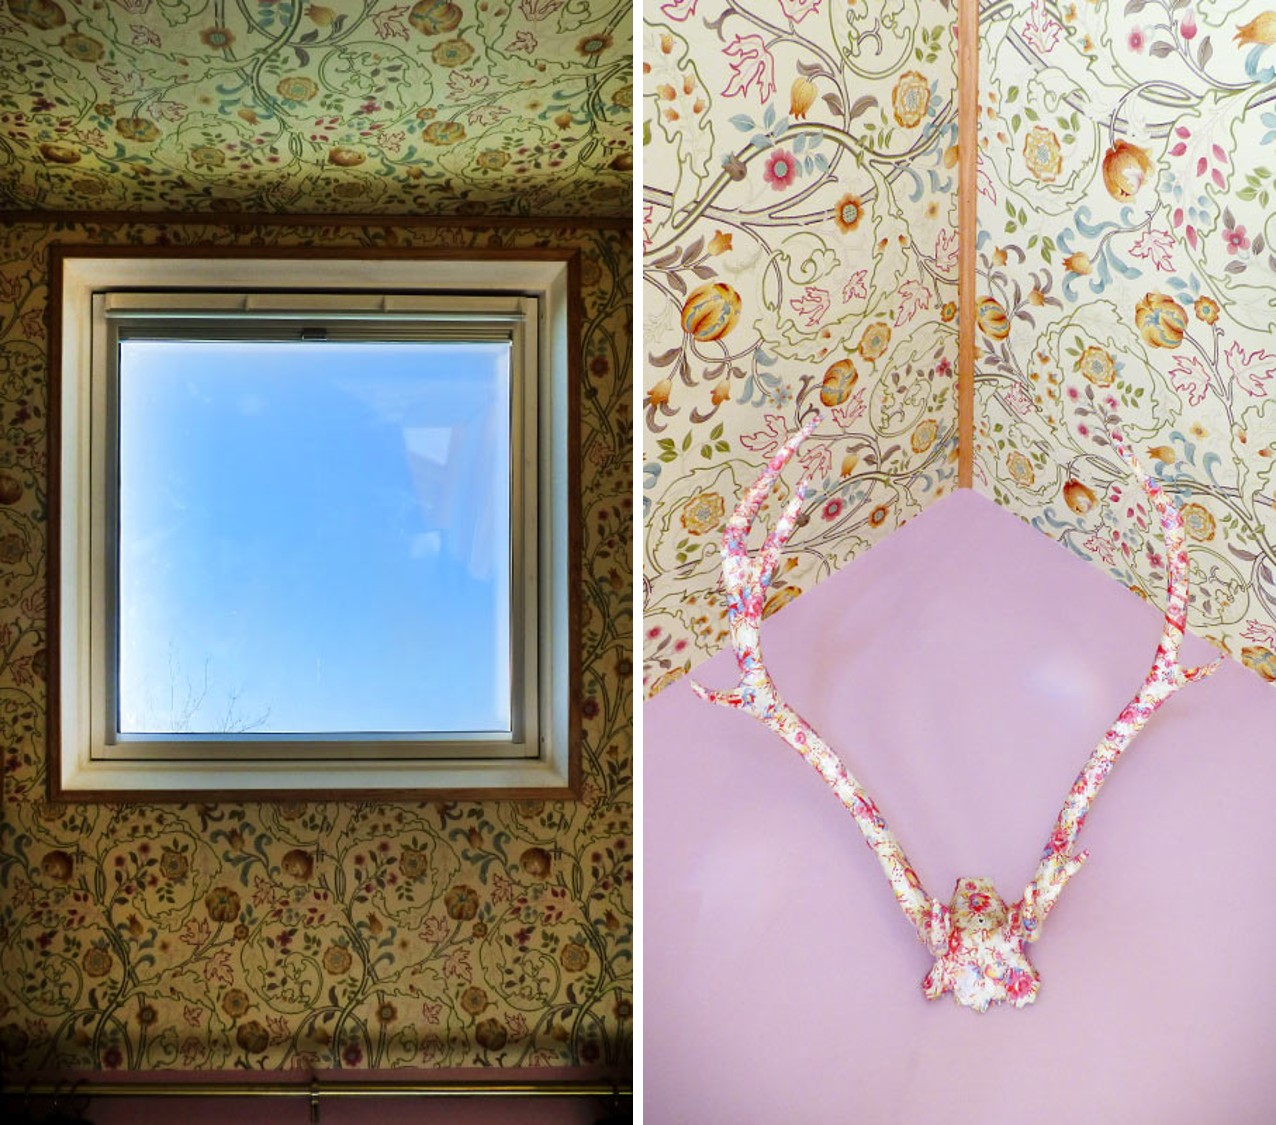 William Morris ceiling and Observatory stag head